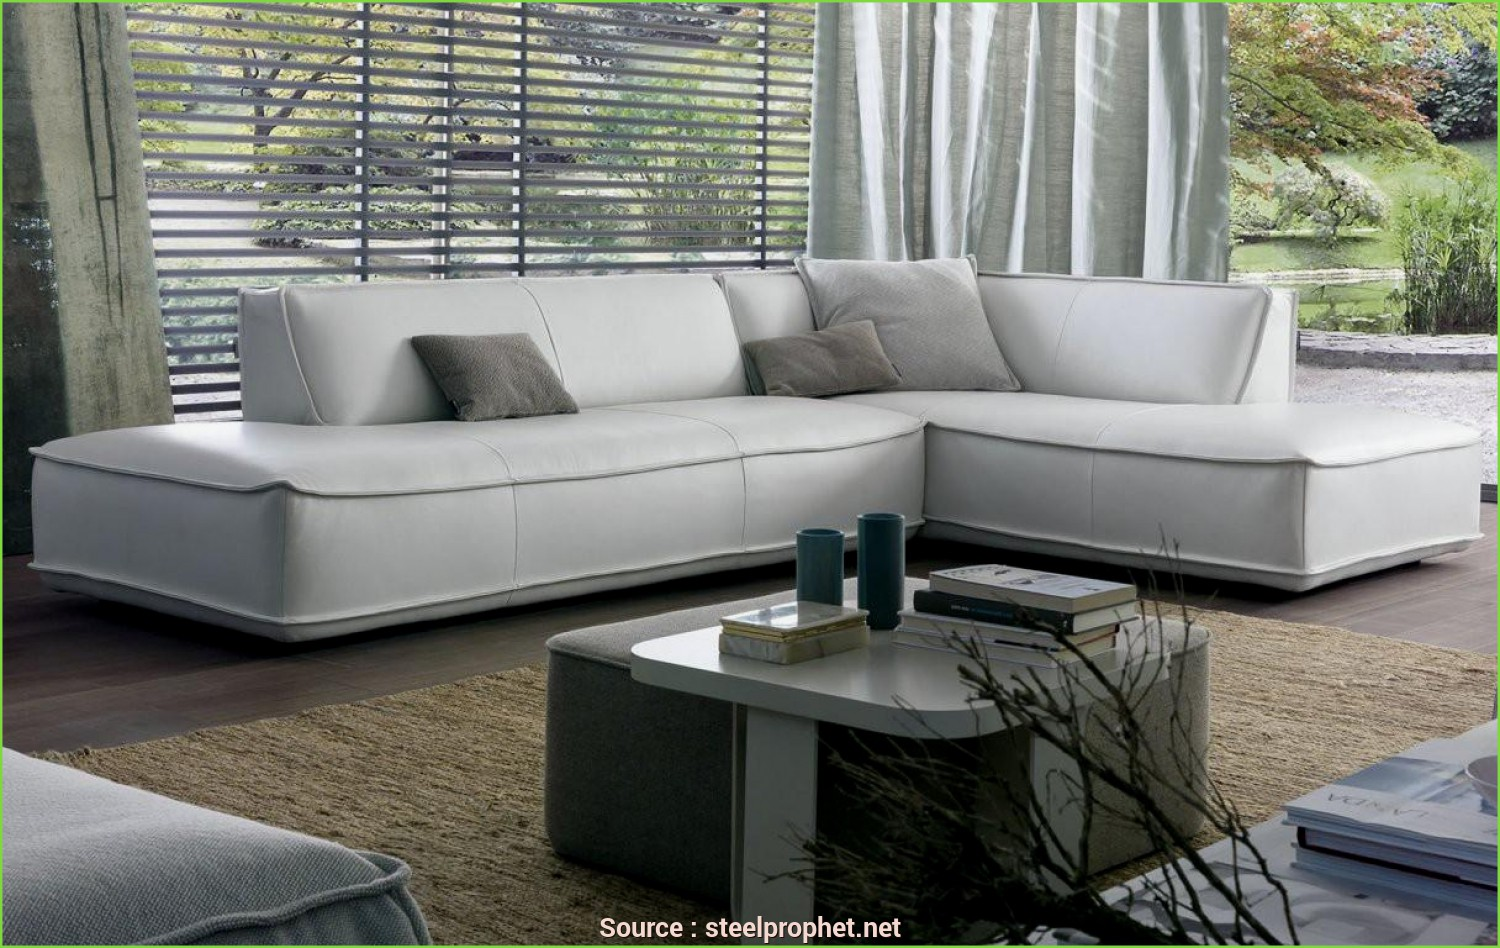 Chatodax Divani In Tessuto, Completare ... Chateau D Ax Seclin Frais Photographie 20 Collection Of Divani Chateau D Ax Leather Sofas